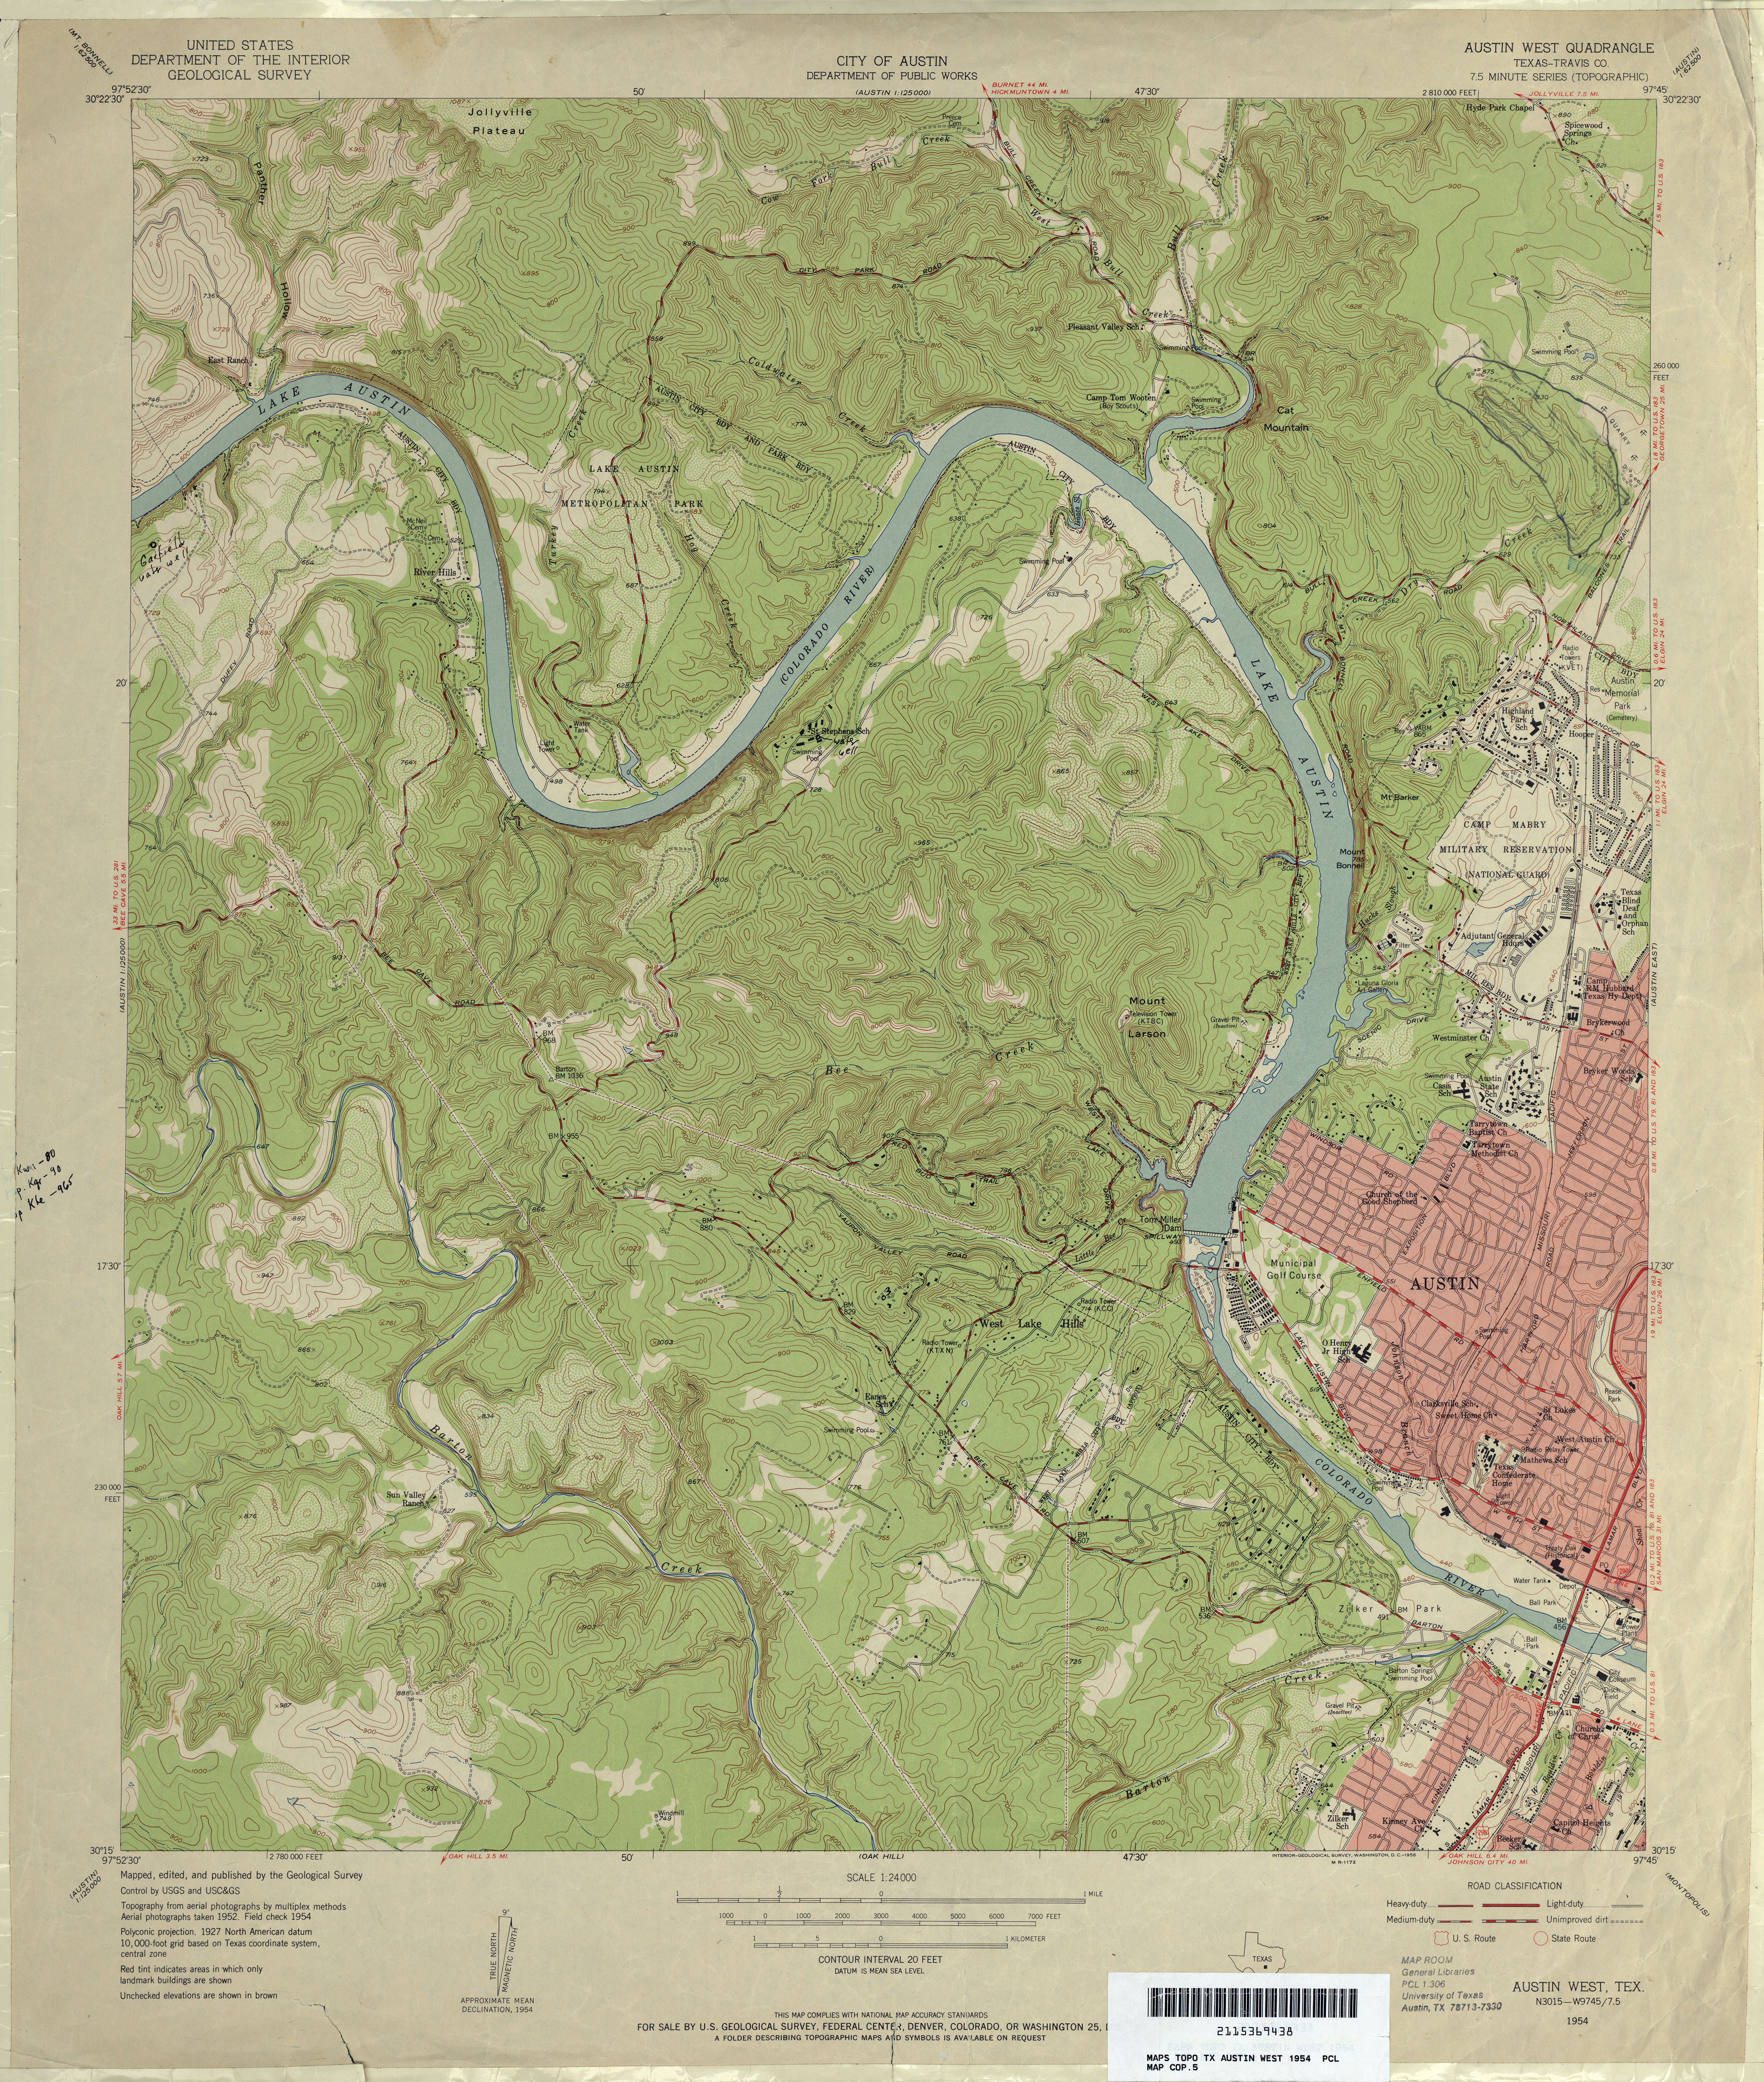 Austin Texas Topographic Maps Perrycastaneda Map Collection North America Relief Map